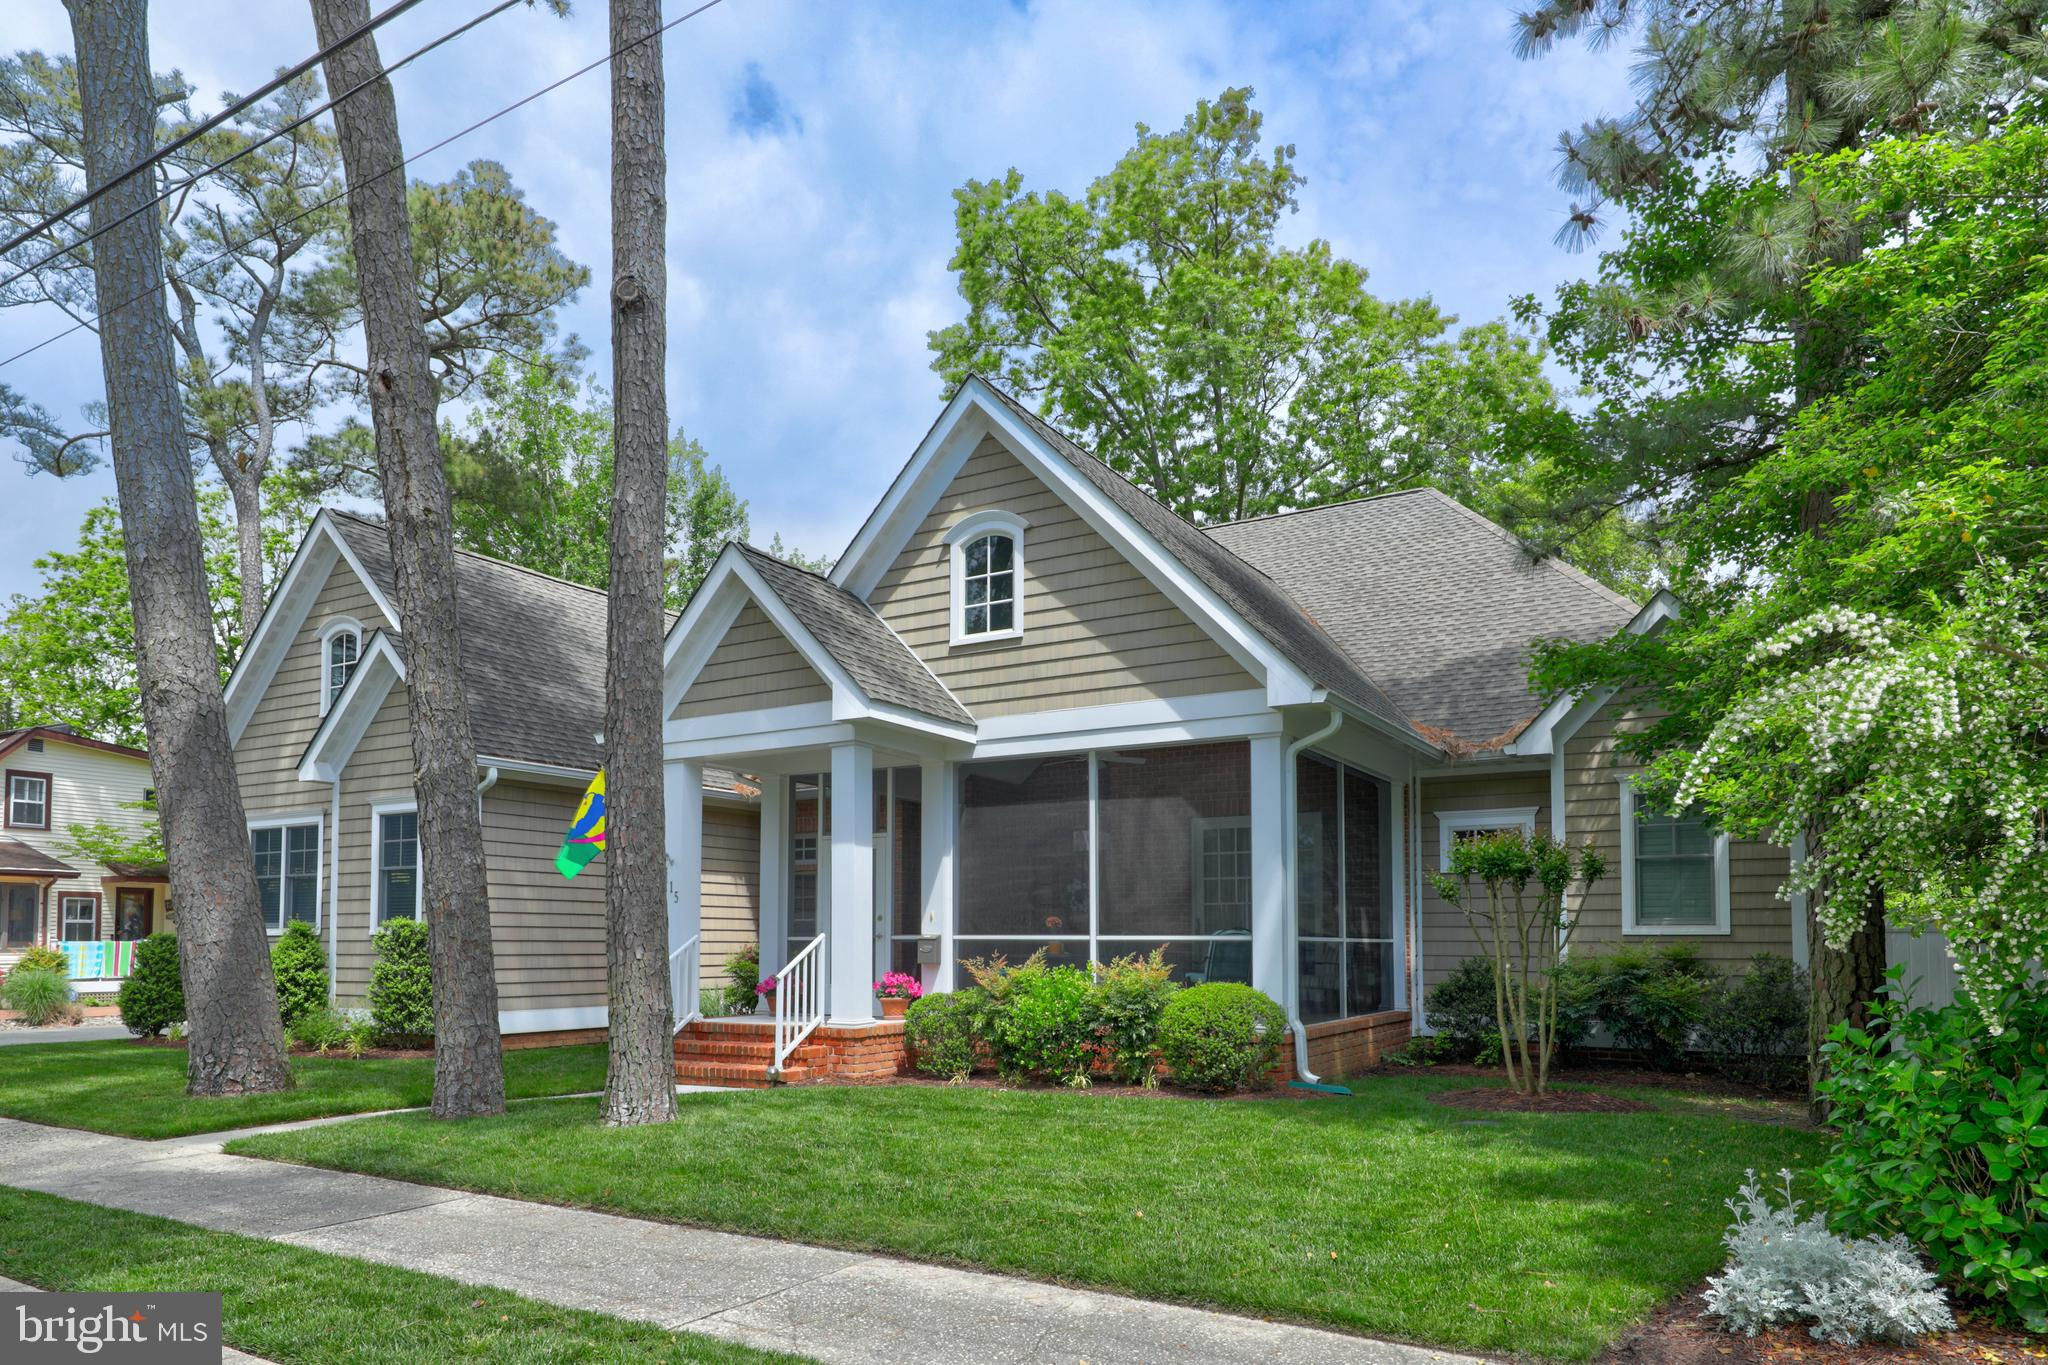 Oversized opportunity on a double lot in South Rehoboth just a block and a half from the ocean.  Built in 2011 before the tightening of restrictions, this 4,892 heated square foot home (6,179 square feet under roof including garage and porches) is approximately 30 percent larger than currently allowed.  Enter to a gracious living and dining room in this sprawling 5 bedroom home featuring 3 ensuite bedrooms downstairs, family room, office, spacious front porch, rear porch, side deck plus 2 bedrooms upstairs, a huge bunkroom with unfinished bathroom. There is a two-car garage, irrigation system and an outdoor shower.  Discerning buyers will appreciate many wonderful features including a coffered ceiling, vaulted ceilings, two fireplaces, hardwood floors, extensive custom cabinetry, granite counters, handsome moldings, a well-appointed kitchen, a luxurious master suite with two full baths and the quintessential front porch.  Perfect opportunity for large groups and multi-generational families.  Rare 100x100 lot!